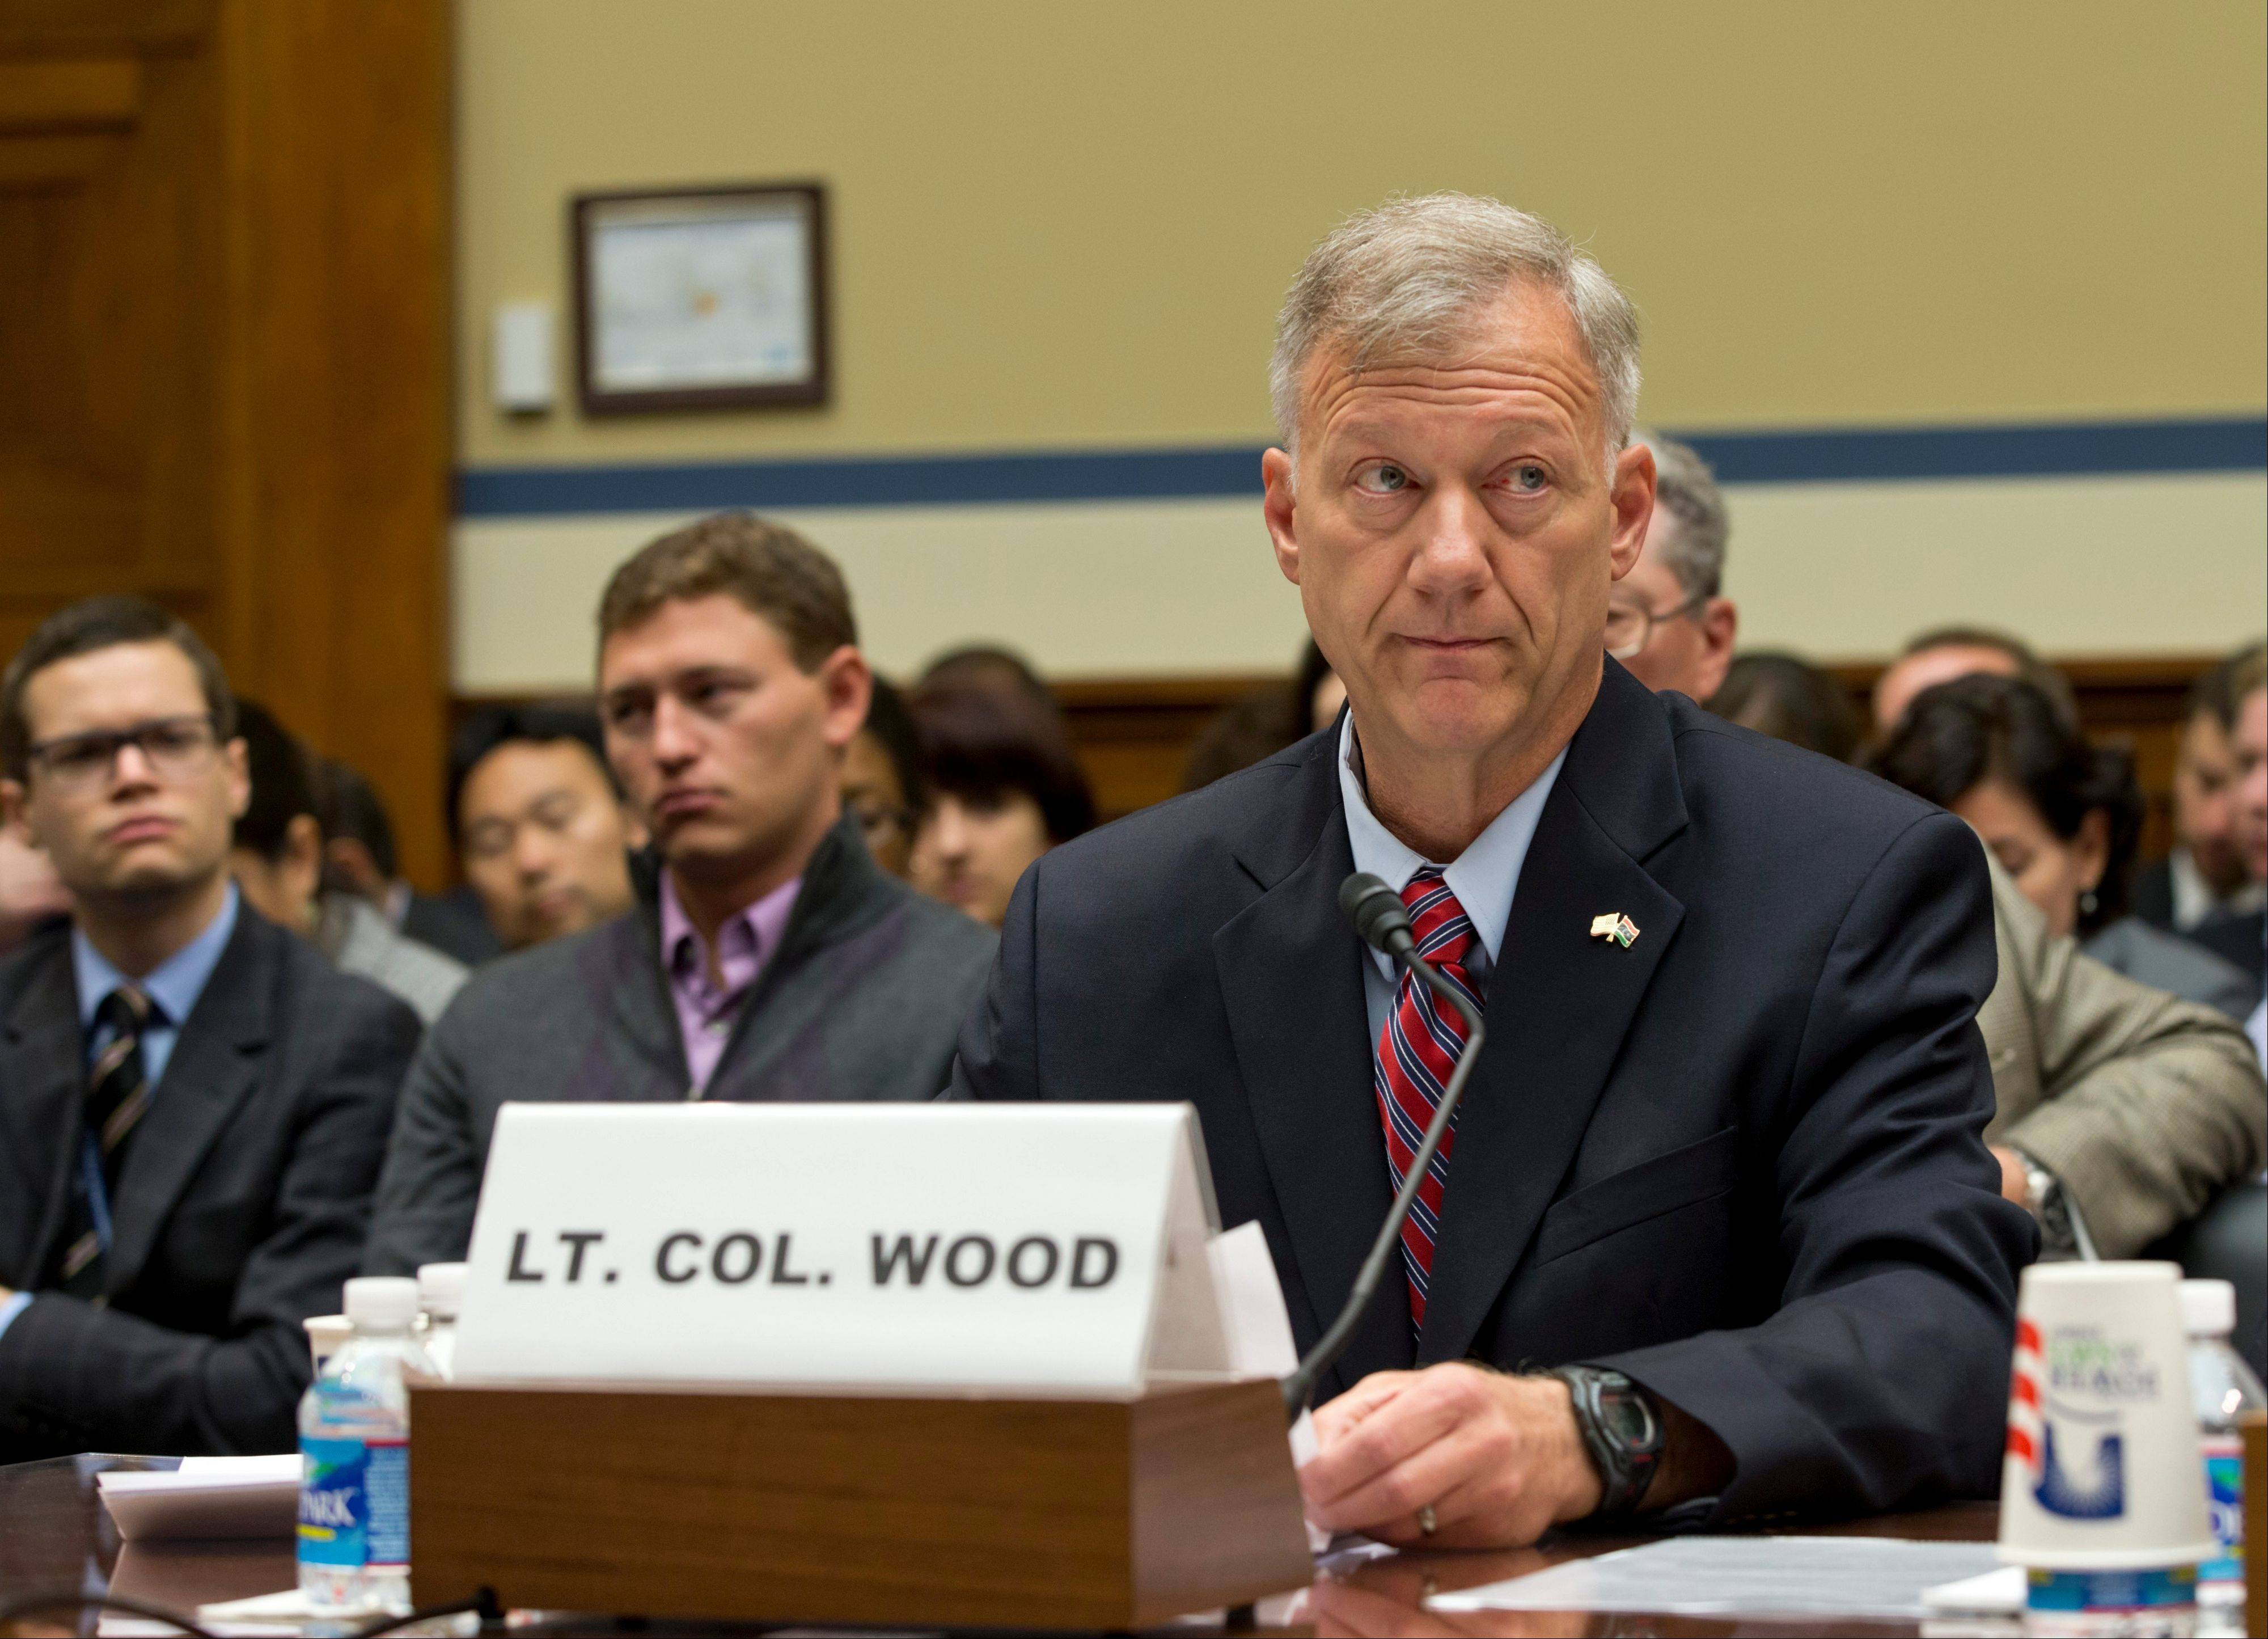 Lt. Col. Andrew Wood, a Utah National Guard Army Green Beret who was the top security official at the consulate in Libya, testifies Wednesday on Capitol Hill in Washington before the House Oversight and Government Reform Committee hearing investigating the Sept. 11, 2012 attack on the American consulate in Benghazi, Libya, that resulted in the death of U.S. Ambassador Christopher Stevens and other Americans.